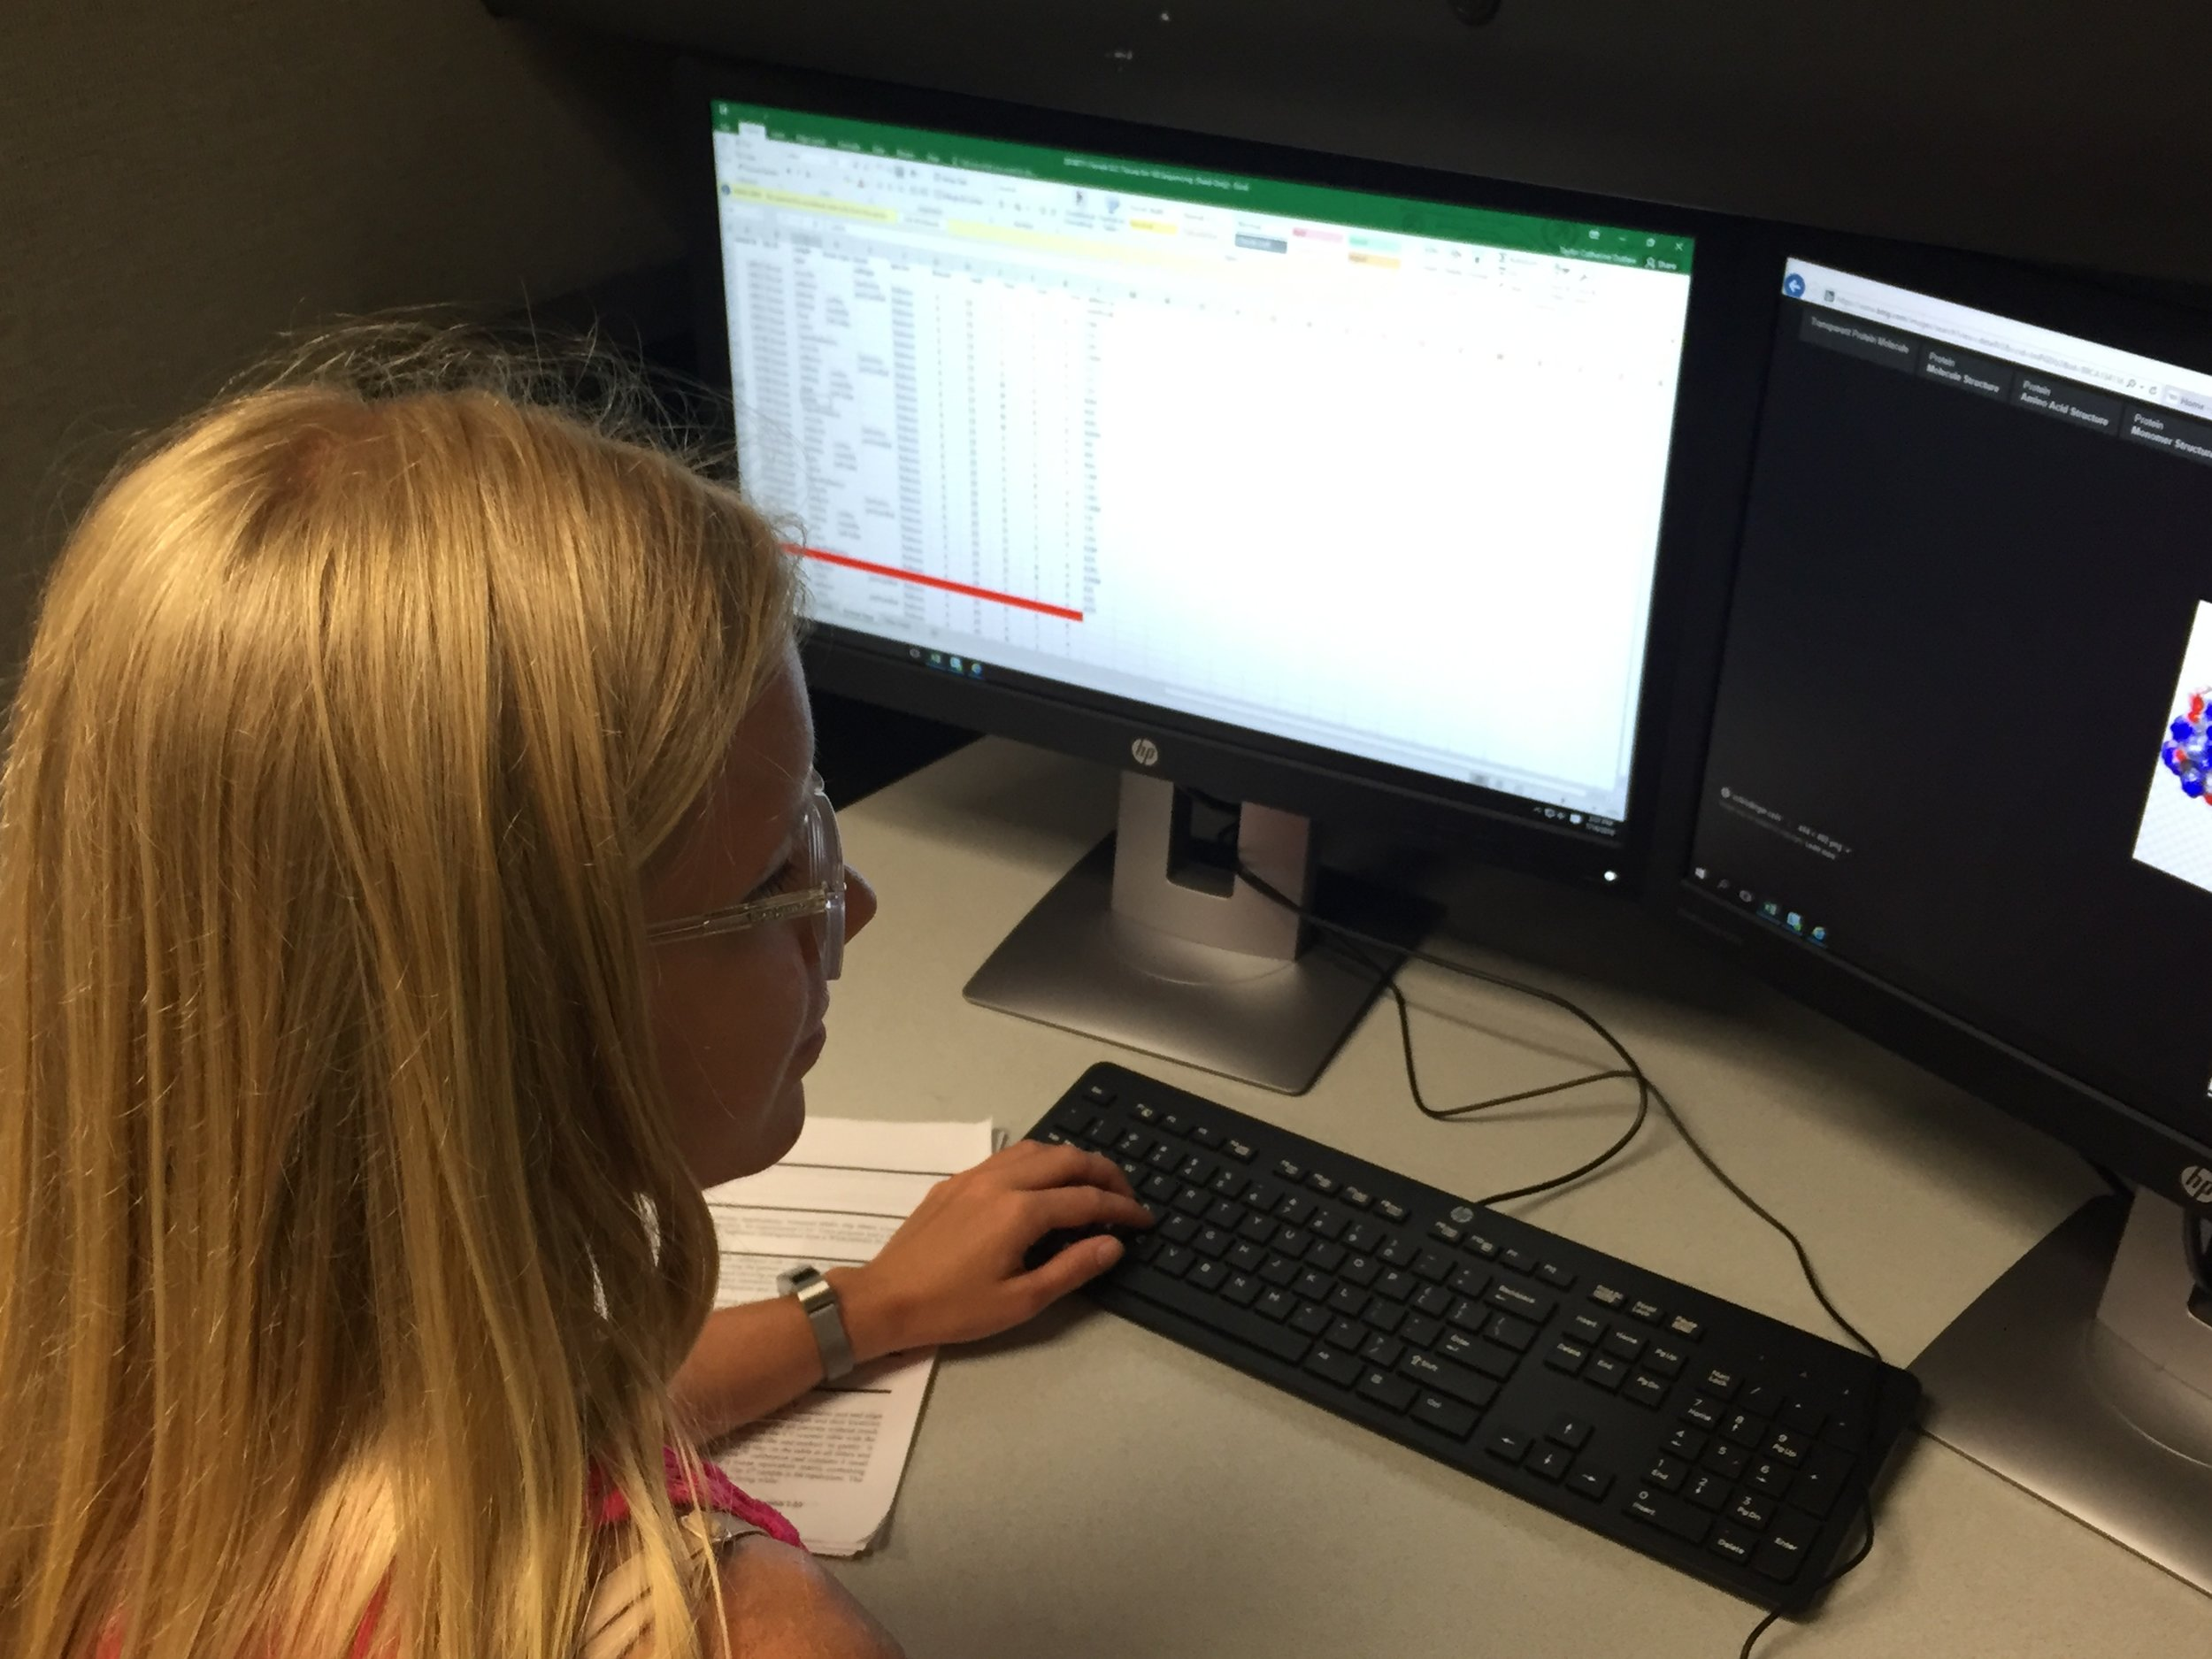 Summer student intern Taylor Outlaw analyzing data